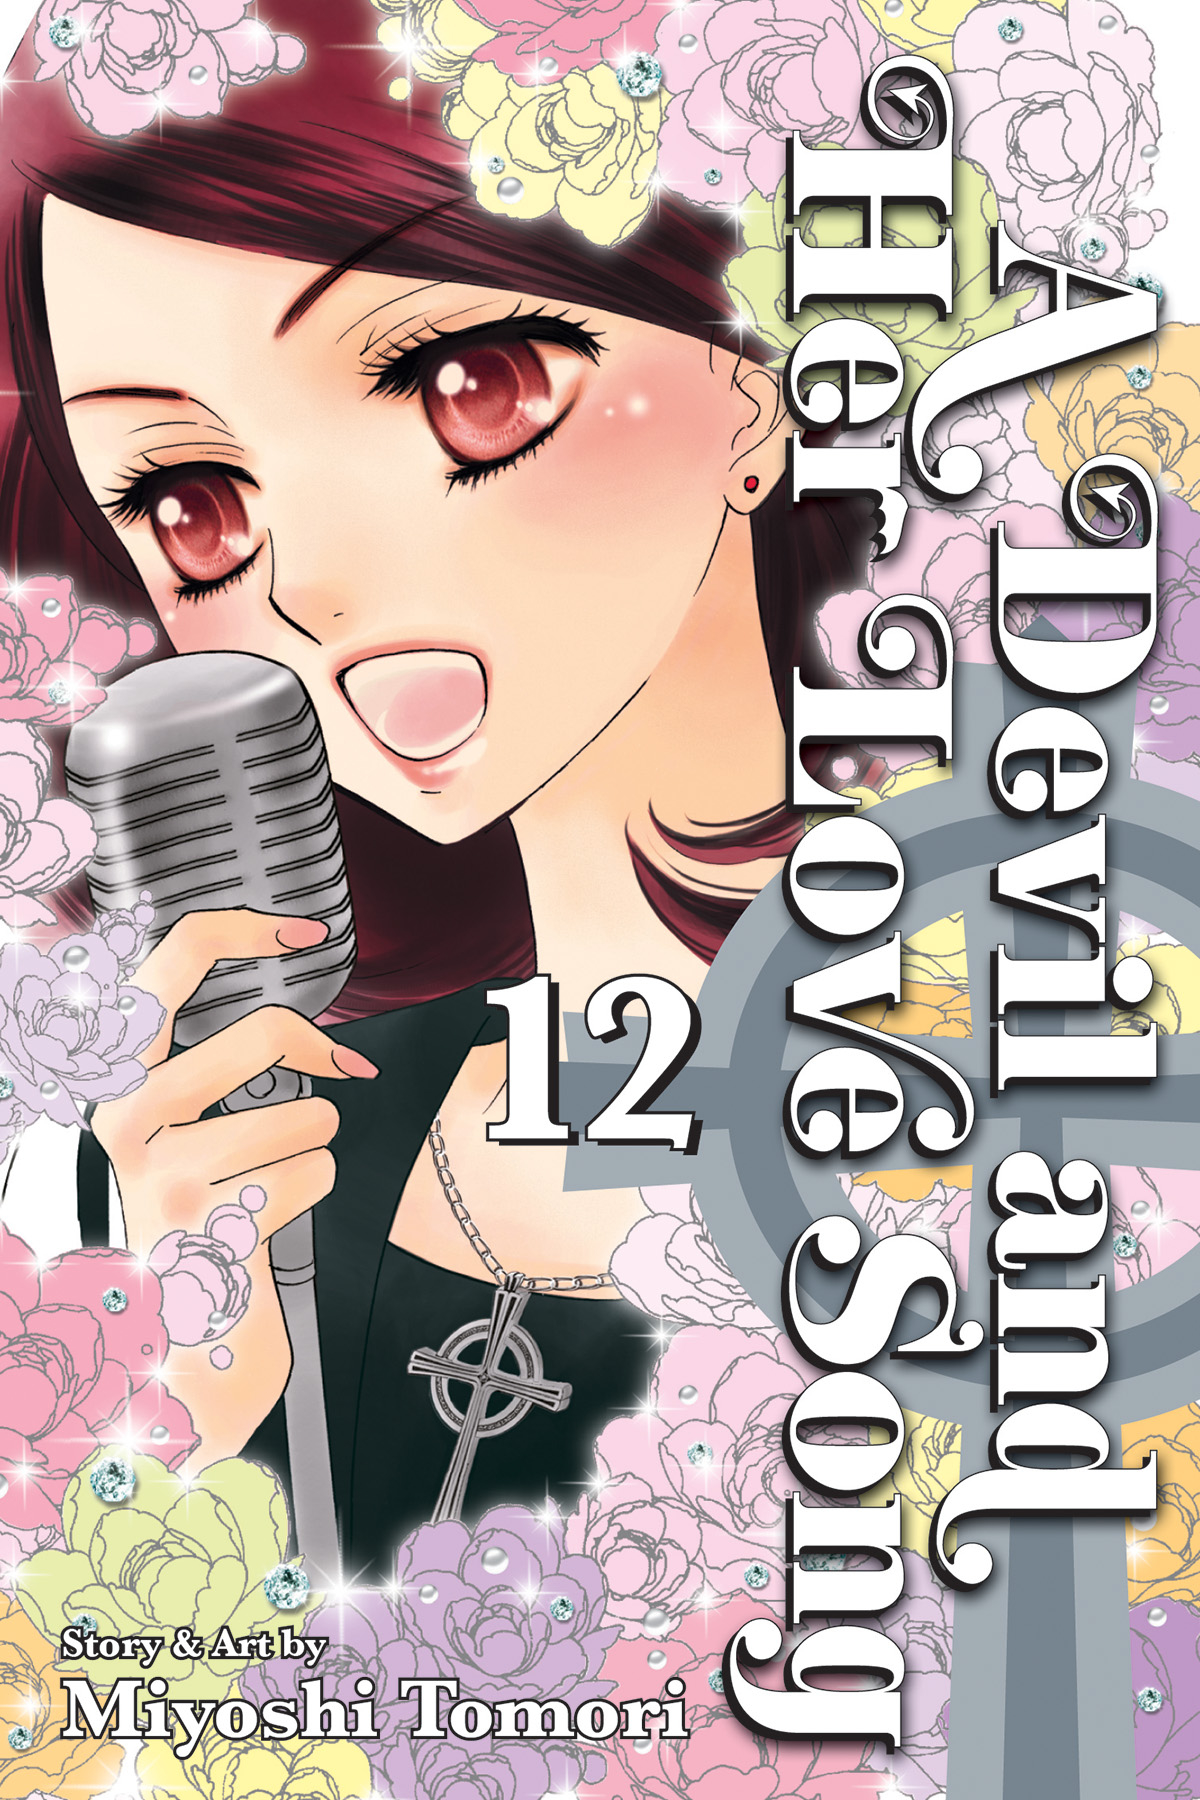 DEVIL & HER LOVE SONG GN VOL 12